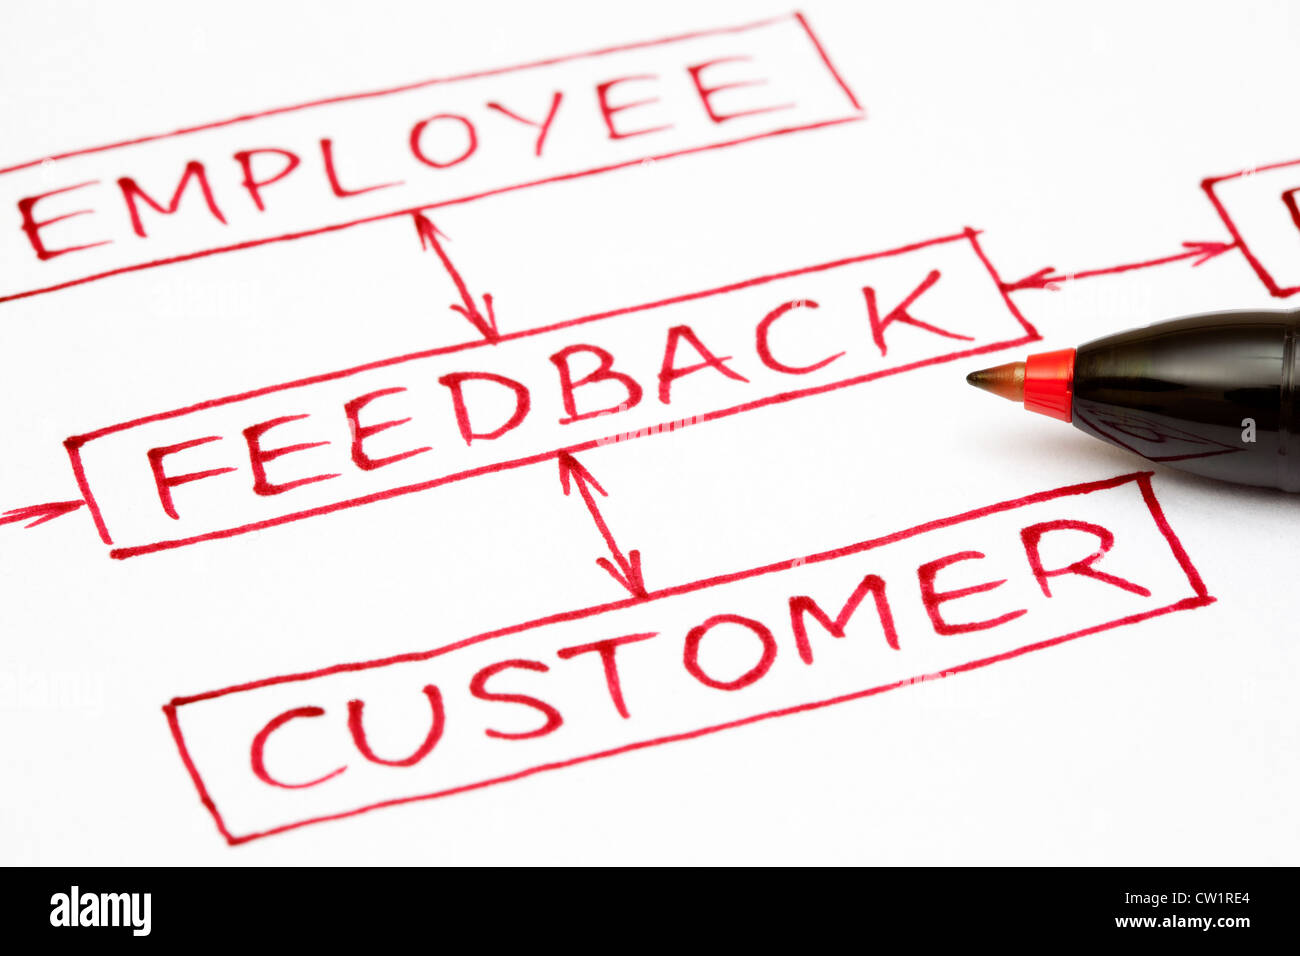 Feedback flow chart written with red pen on paper. - Stock Image